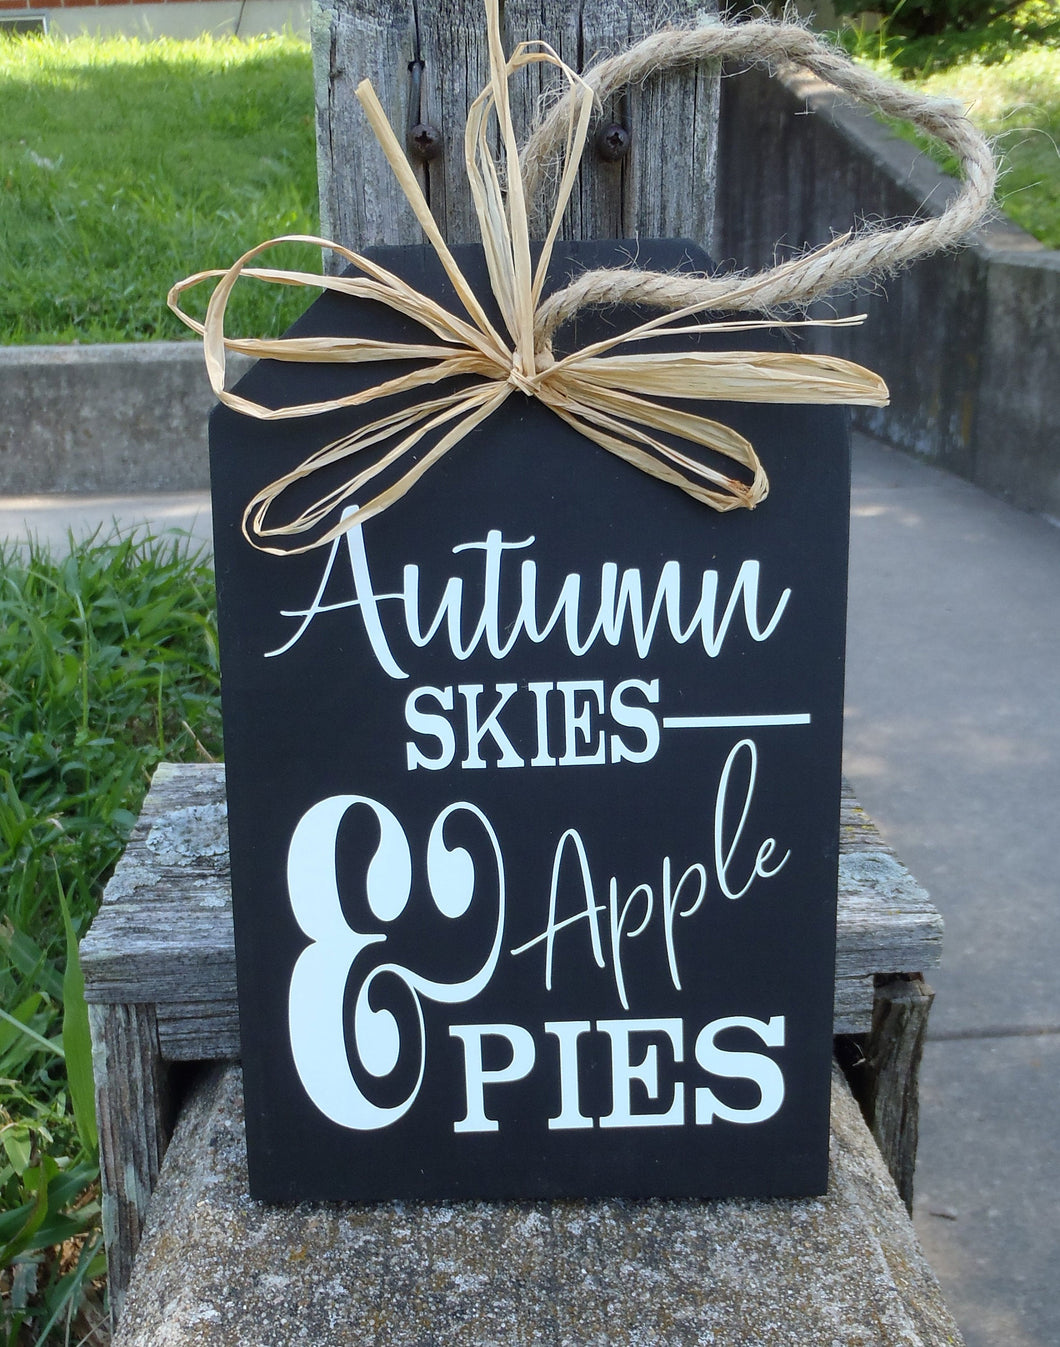 Fall Signs Harvest Sign Autumn Skies Pumpkin Pies Wood Tag Signs Front Door Decor Entry Porch Wall Decor Wreath Accent Outdoor Decorations - Heartfelt Giver